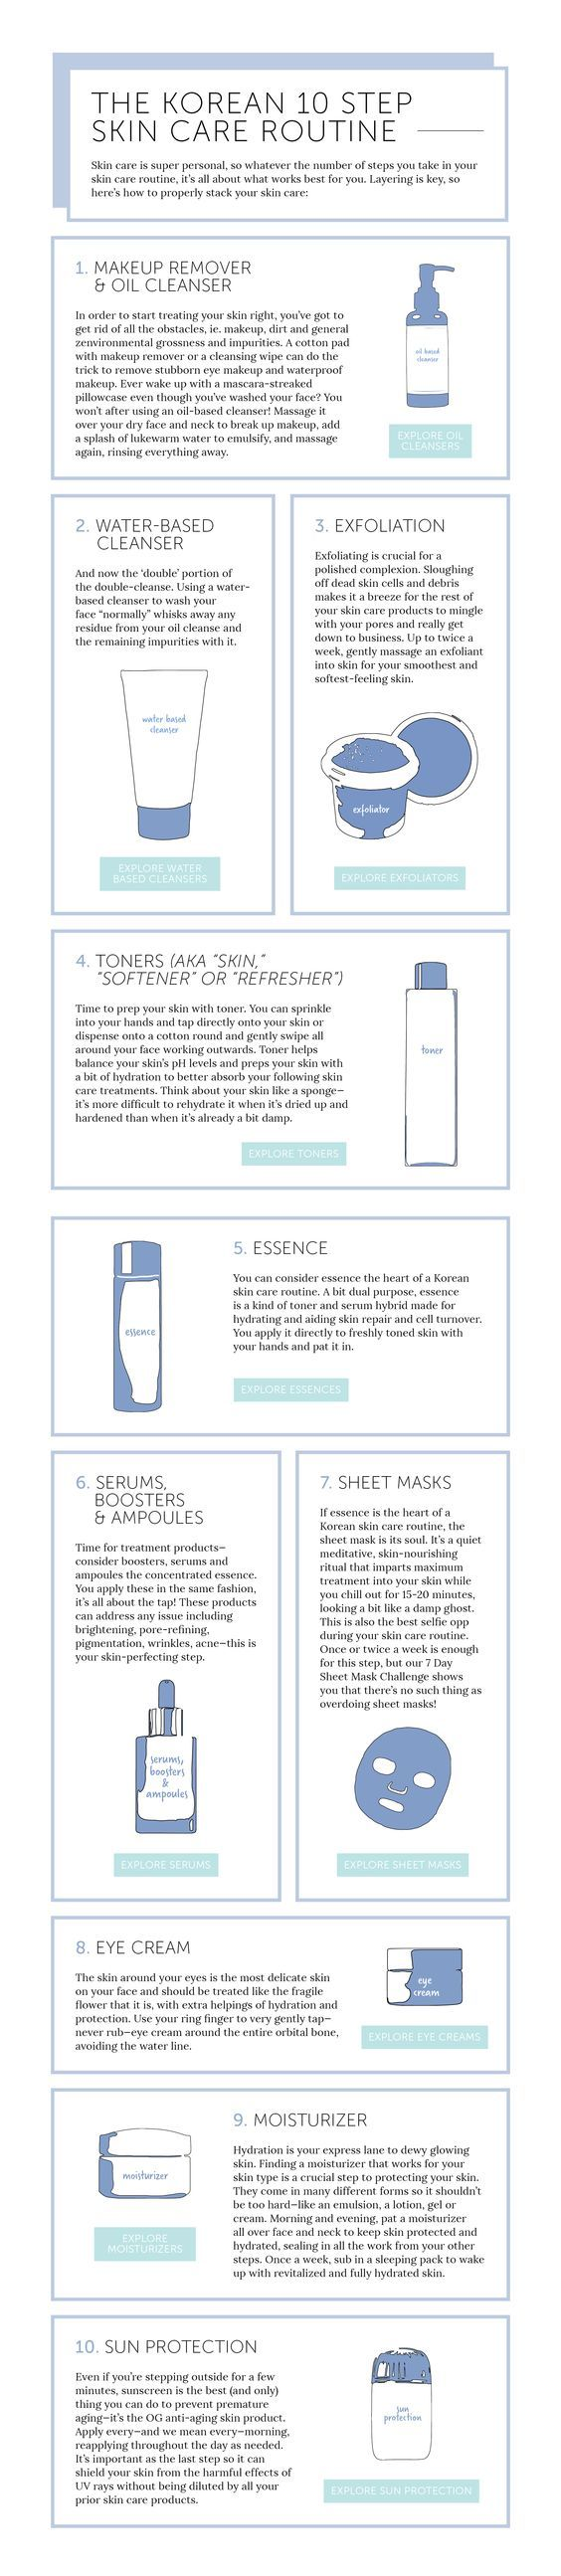 The Korean 10 Step Skin Care Routine Explained: THEKLOG.CO :: THEKLOG.CO :: K-beauty, skin care, makeup, fashion, lifestyle, trends, and more! http://theklog.co/